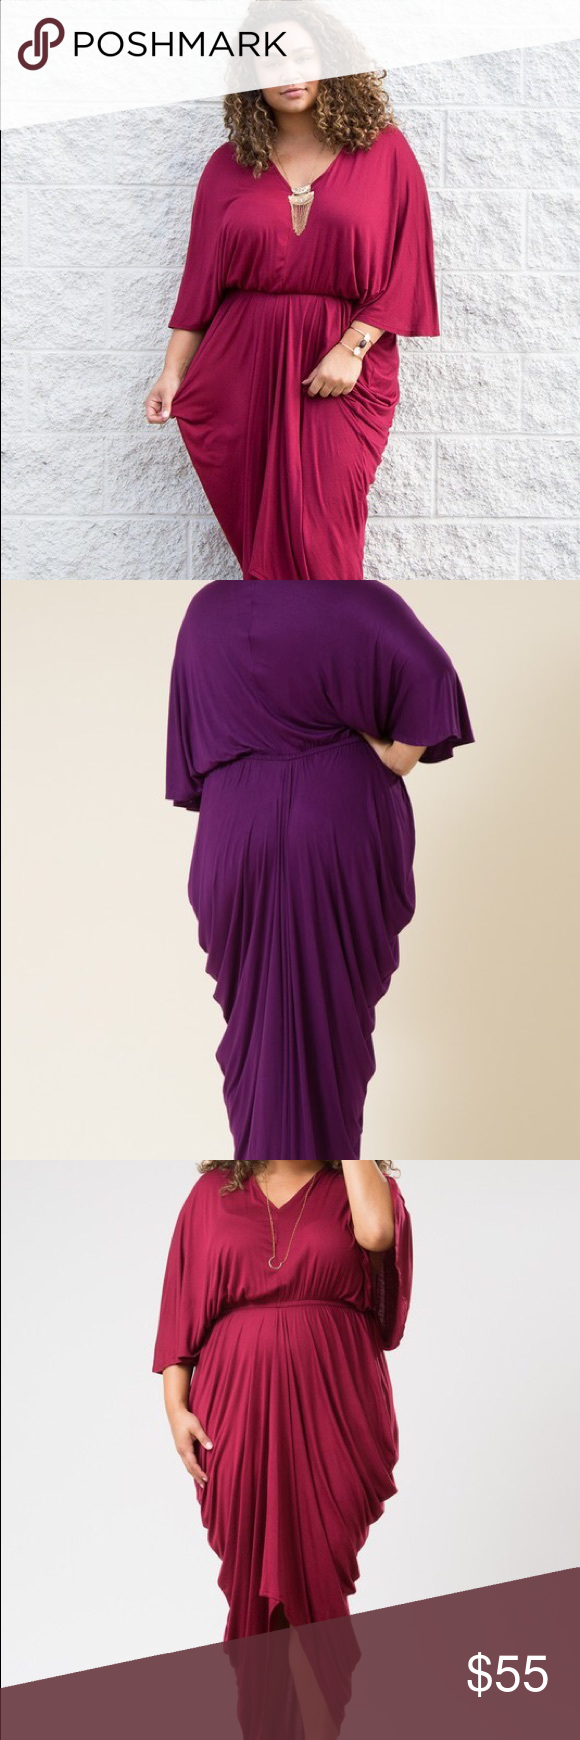 00c8ccaf9e728 Plus Size Goddess Dress in Magenta Magenta v-neck 3 4 sleeve goddess maxi  dress with rubber waistline. Unlined Made in USA Fabric Content  95%  Polyester 5% ...